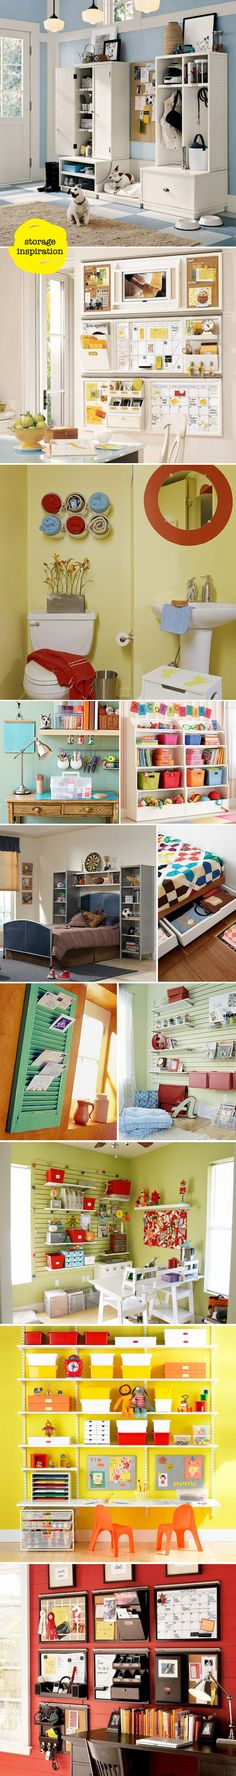 Lots of great ideas for organization.